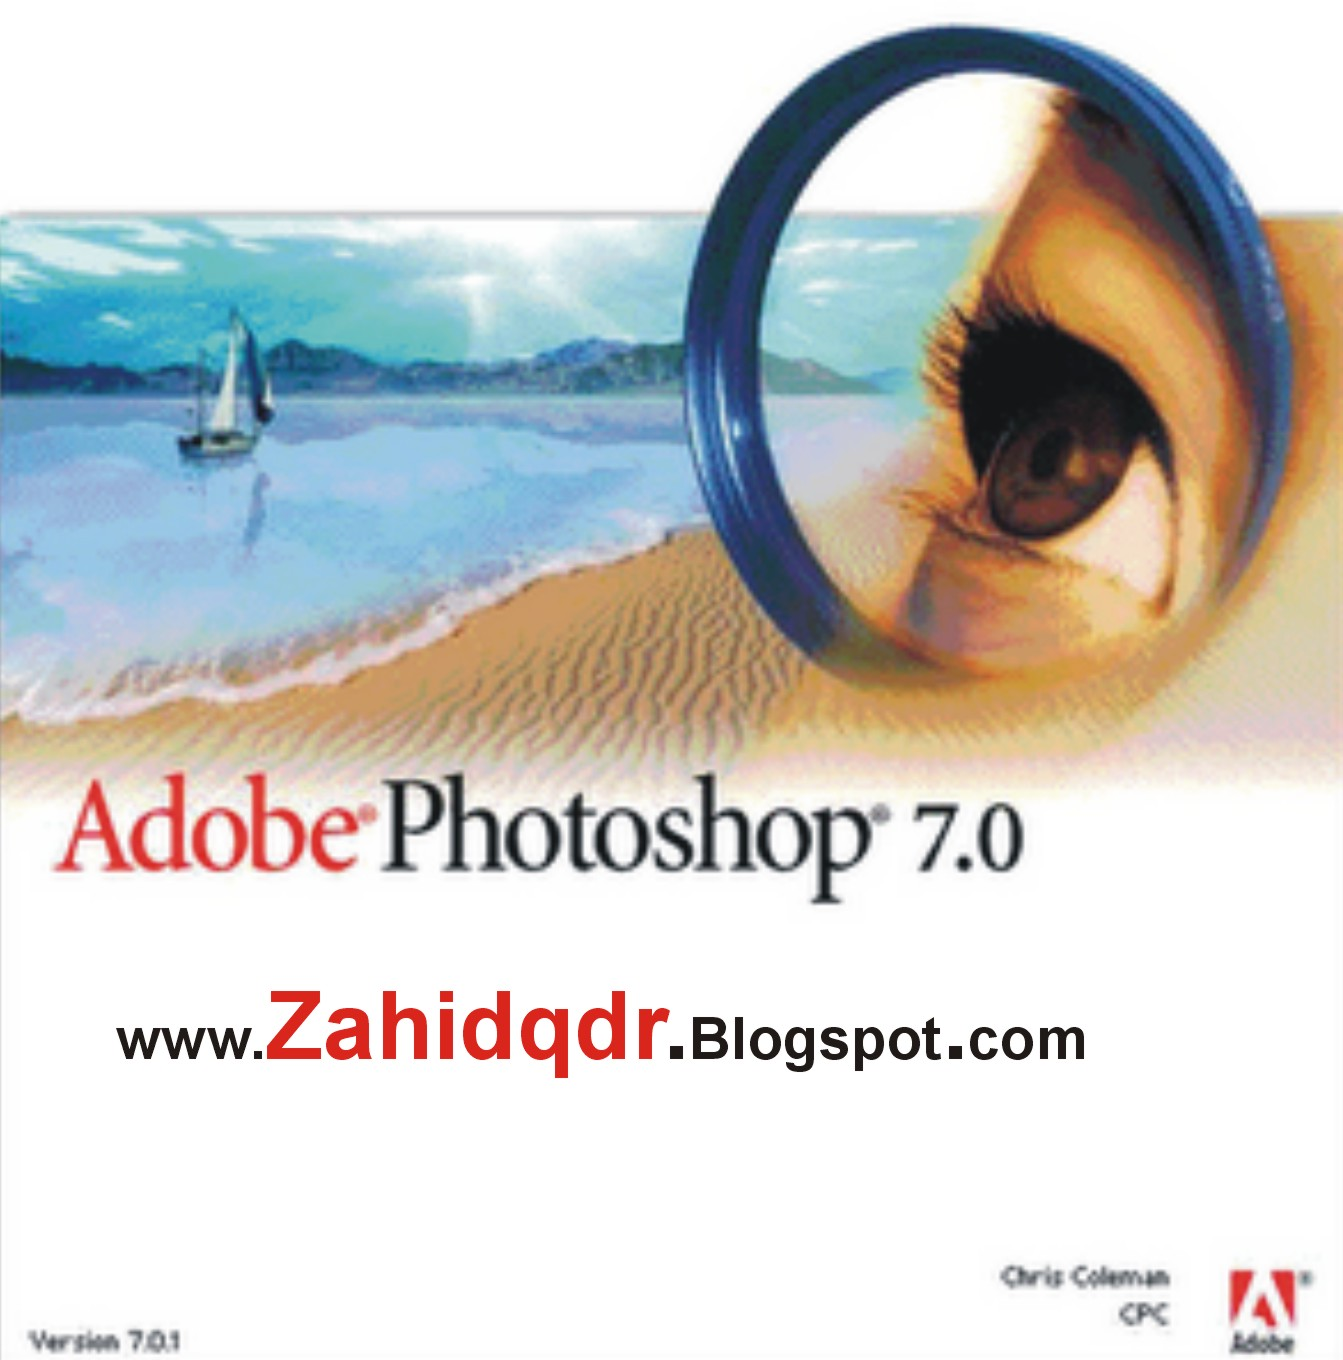 Adobe photoshop 7.0 free download full